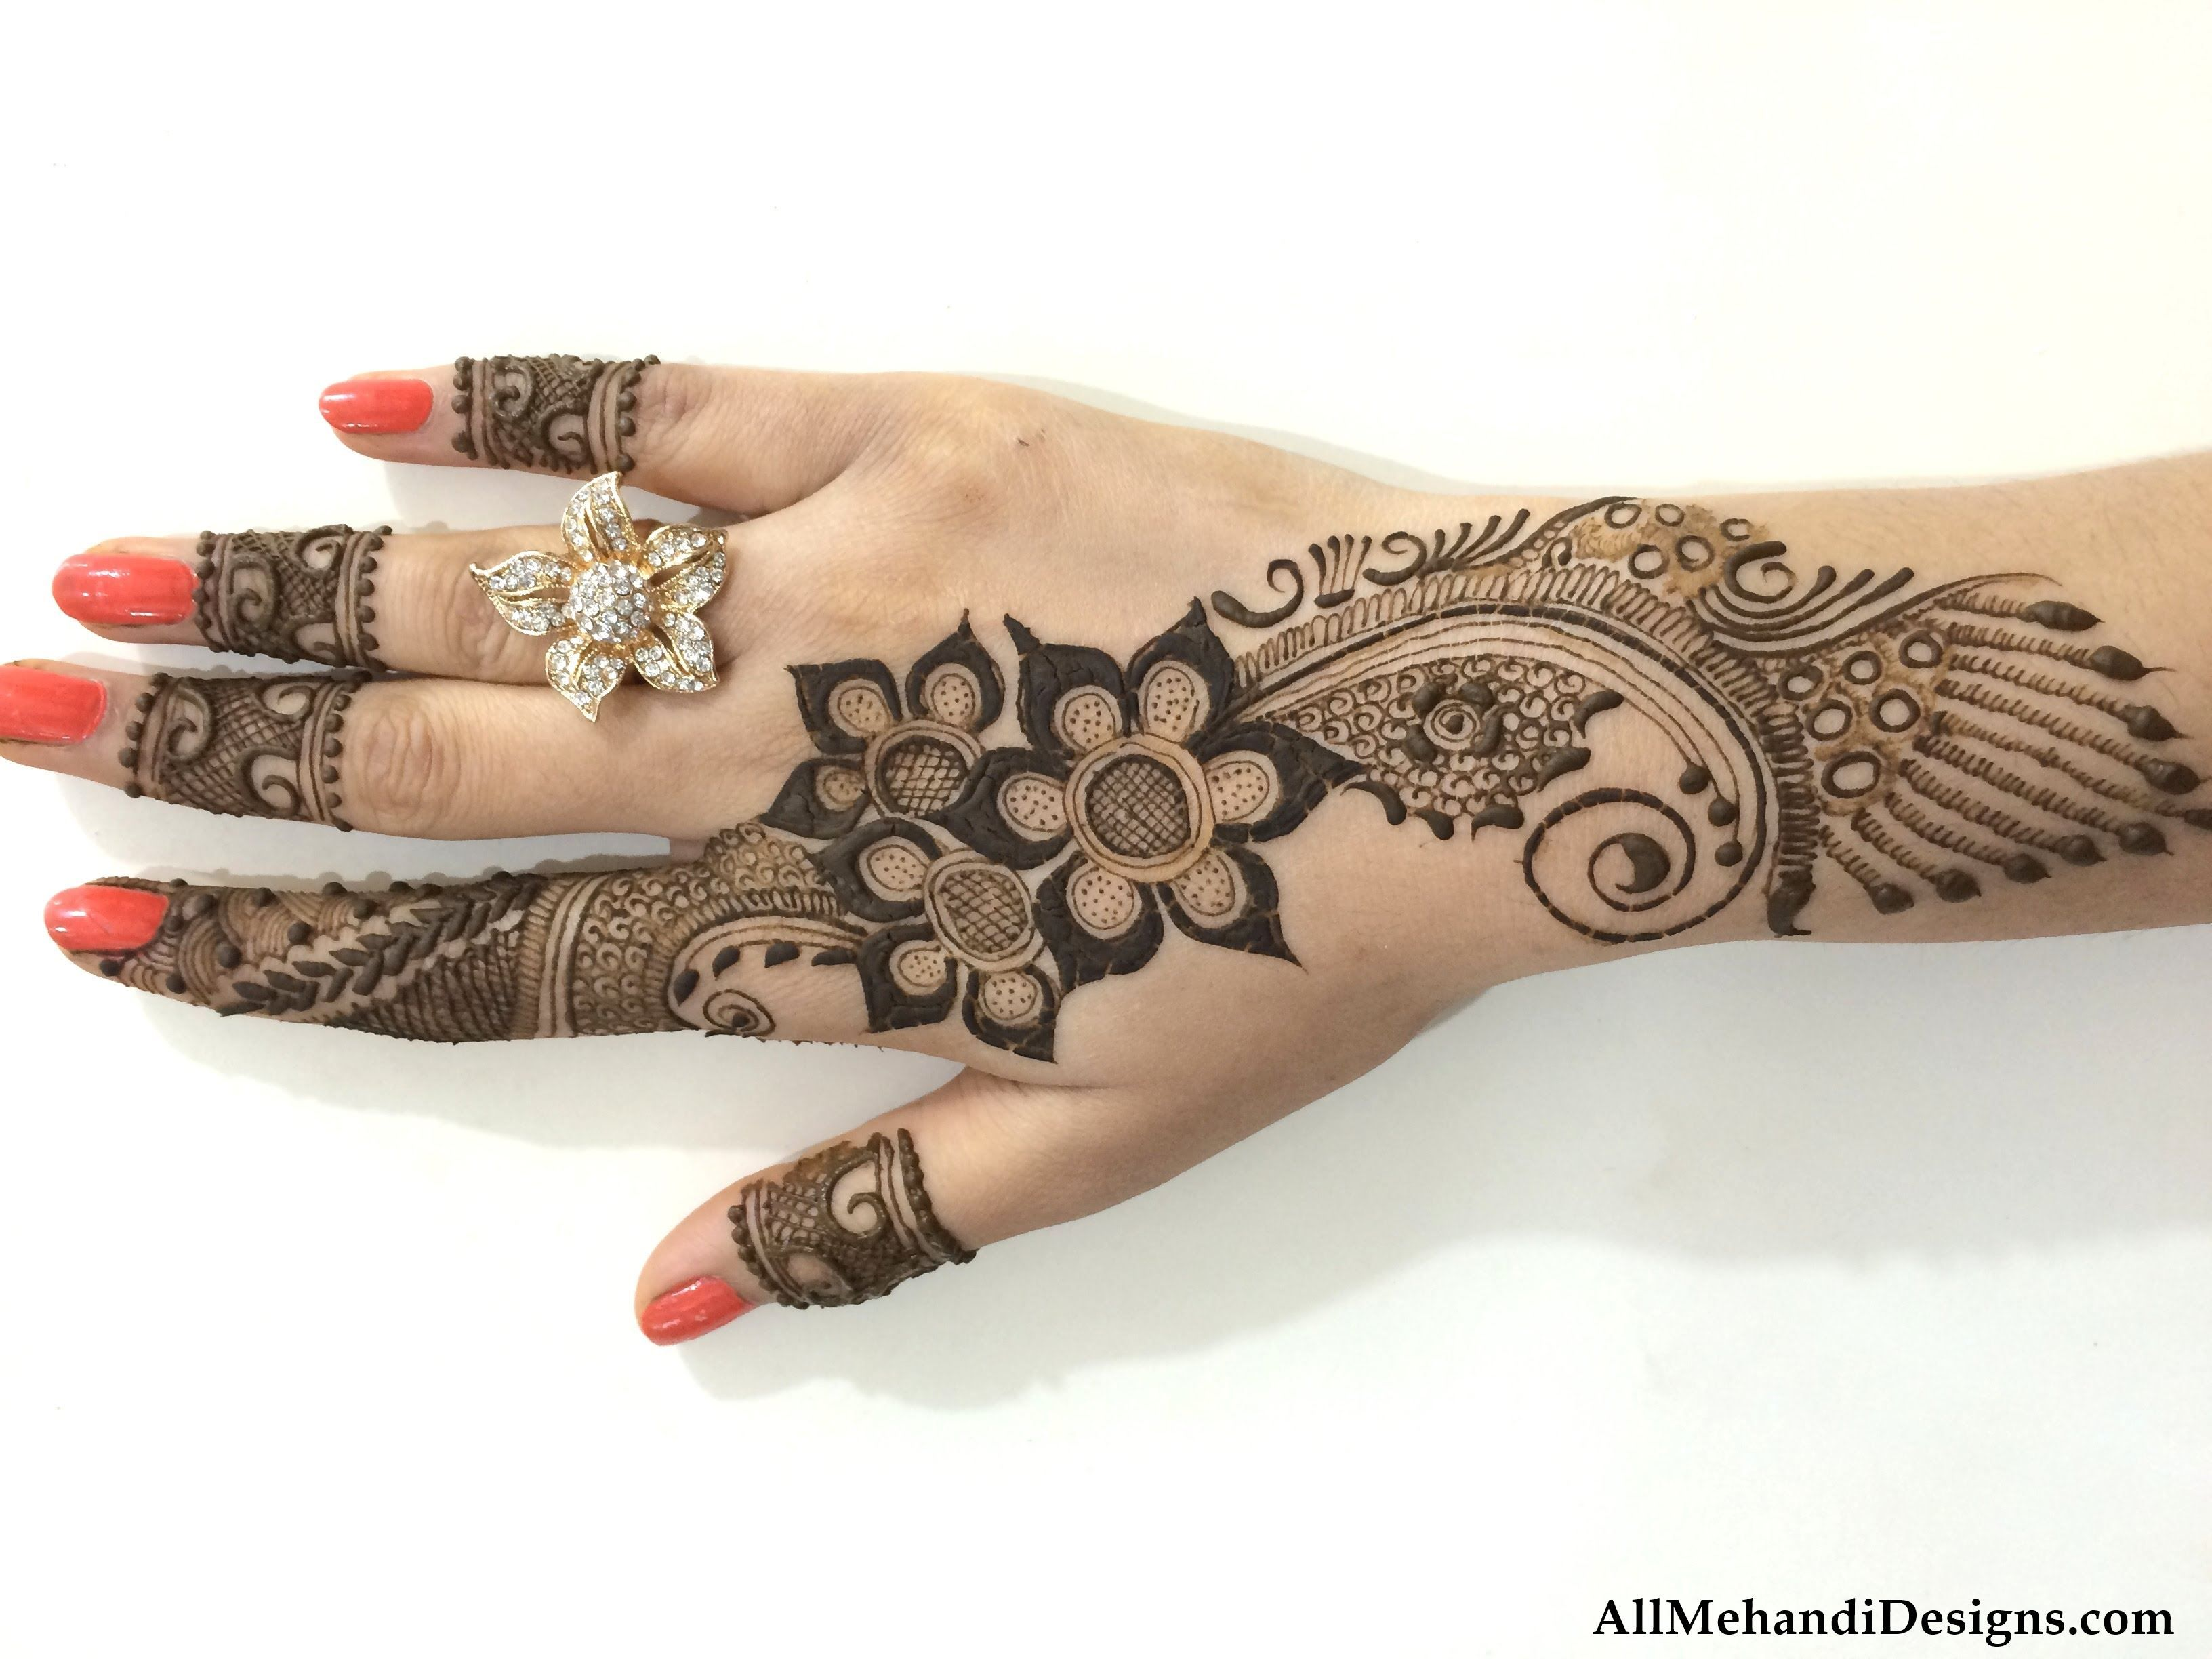 Mehndi Patterns And Designs : Get most easy mehndi design images collection we have added